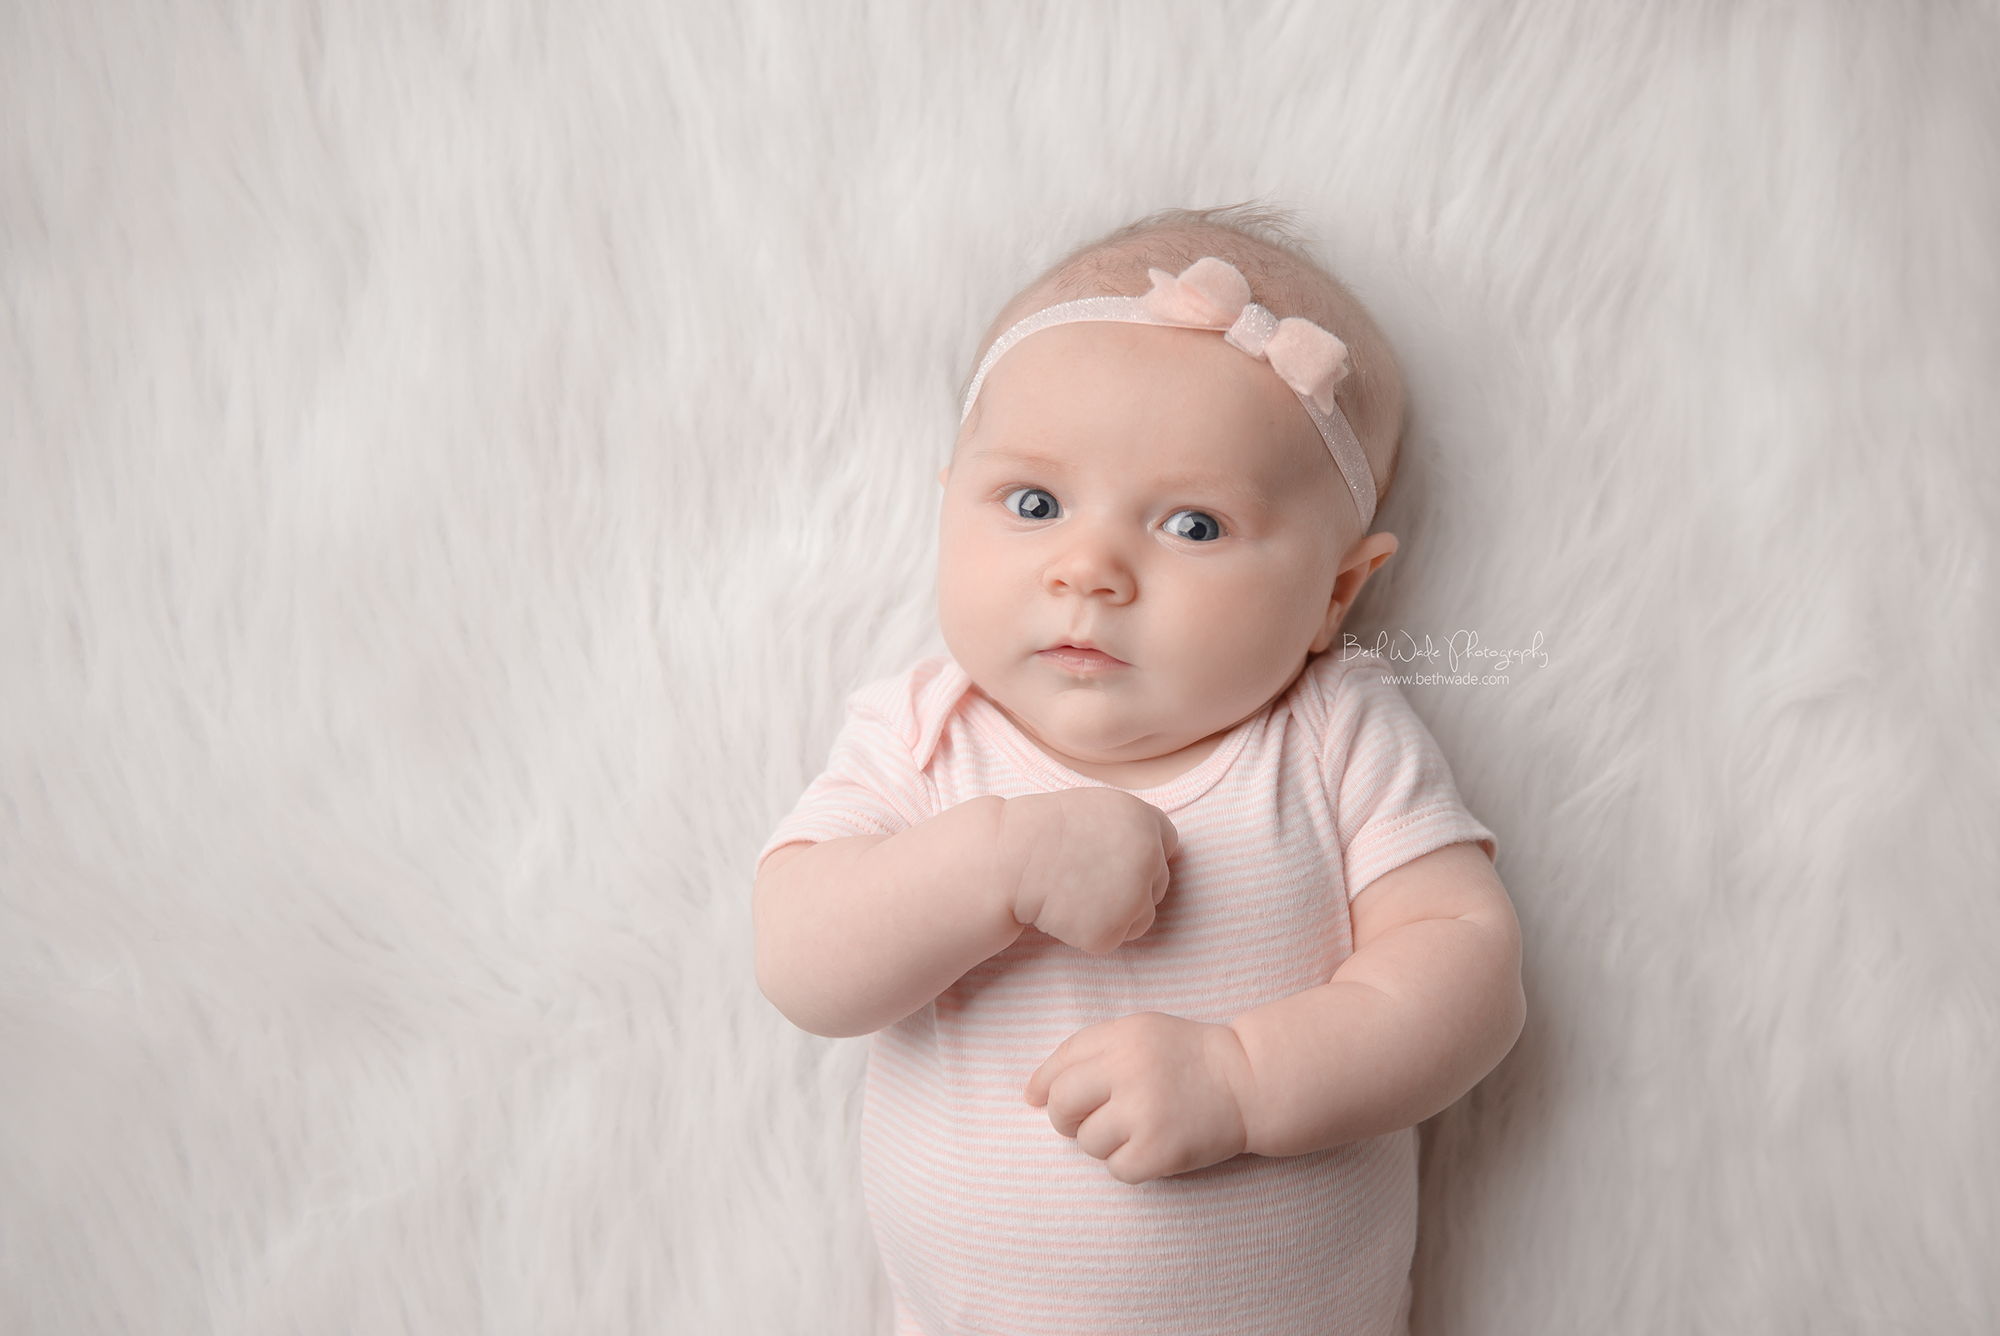 Sweet alice jane our girl is 2 months old lake wylie baby photographer